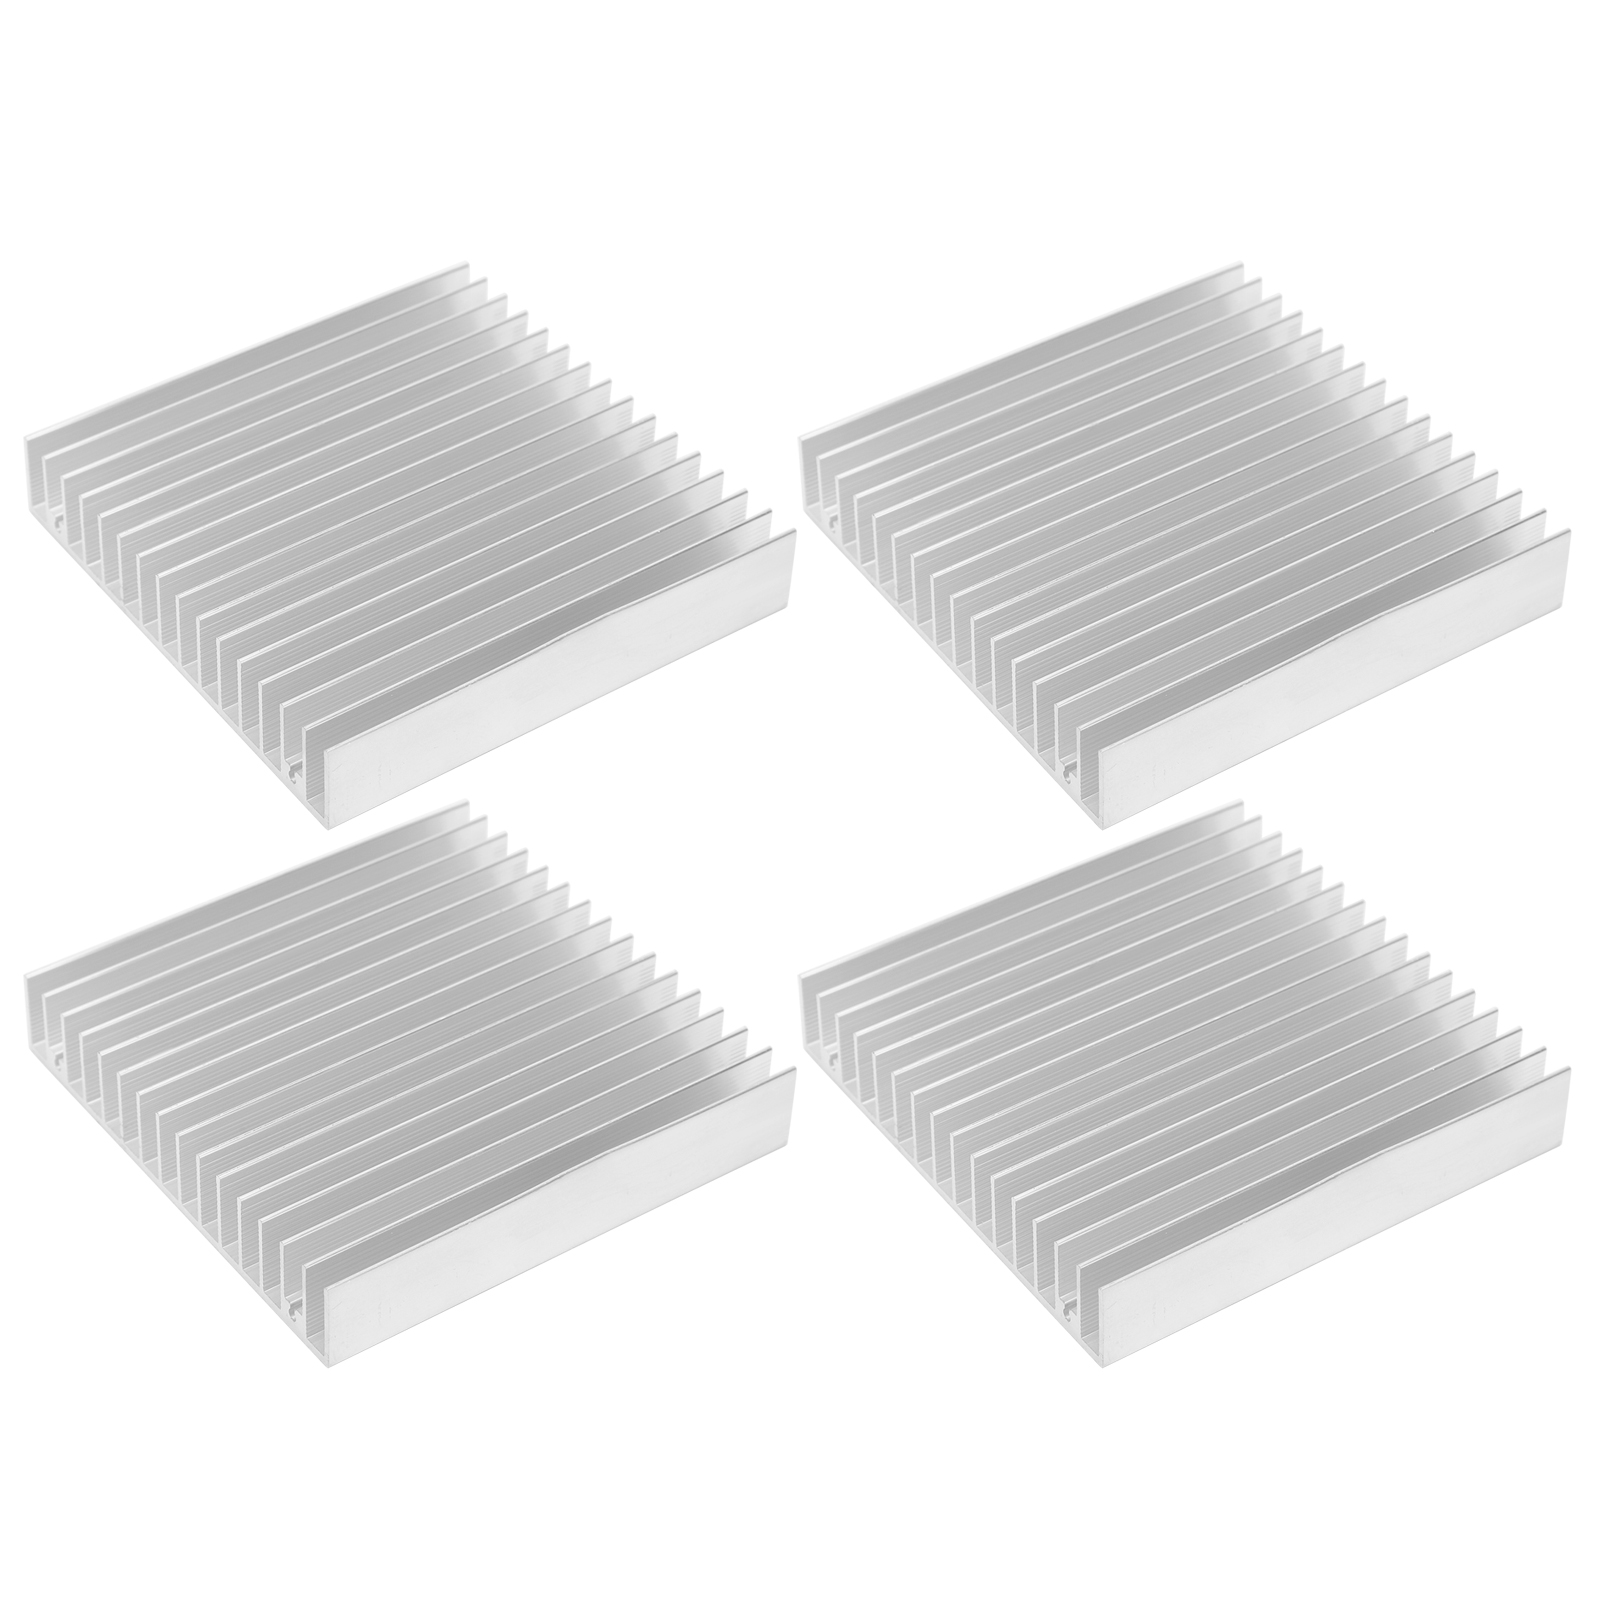 Strong And Durable Anti‑Corrosion 4Pcs Cooling Parts Transistors Ic Radiators for Amplifiers Cpus Heat Sink Board